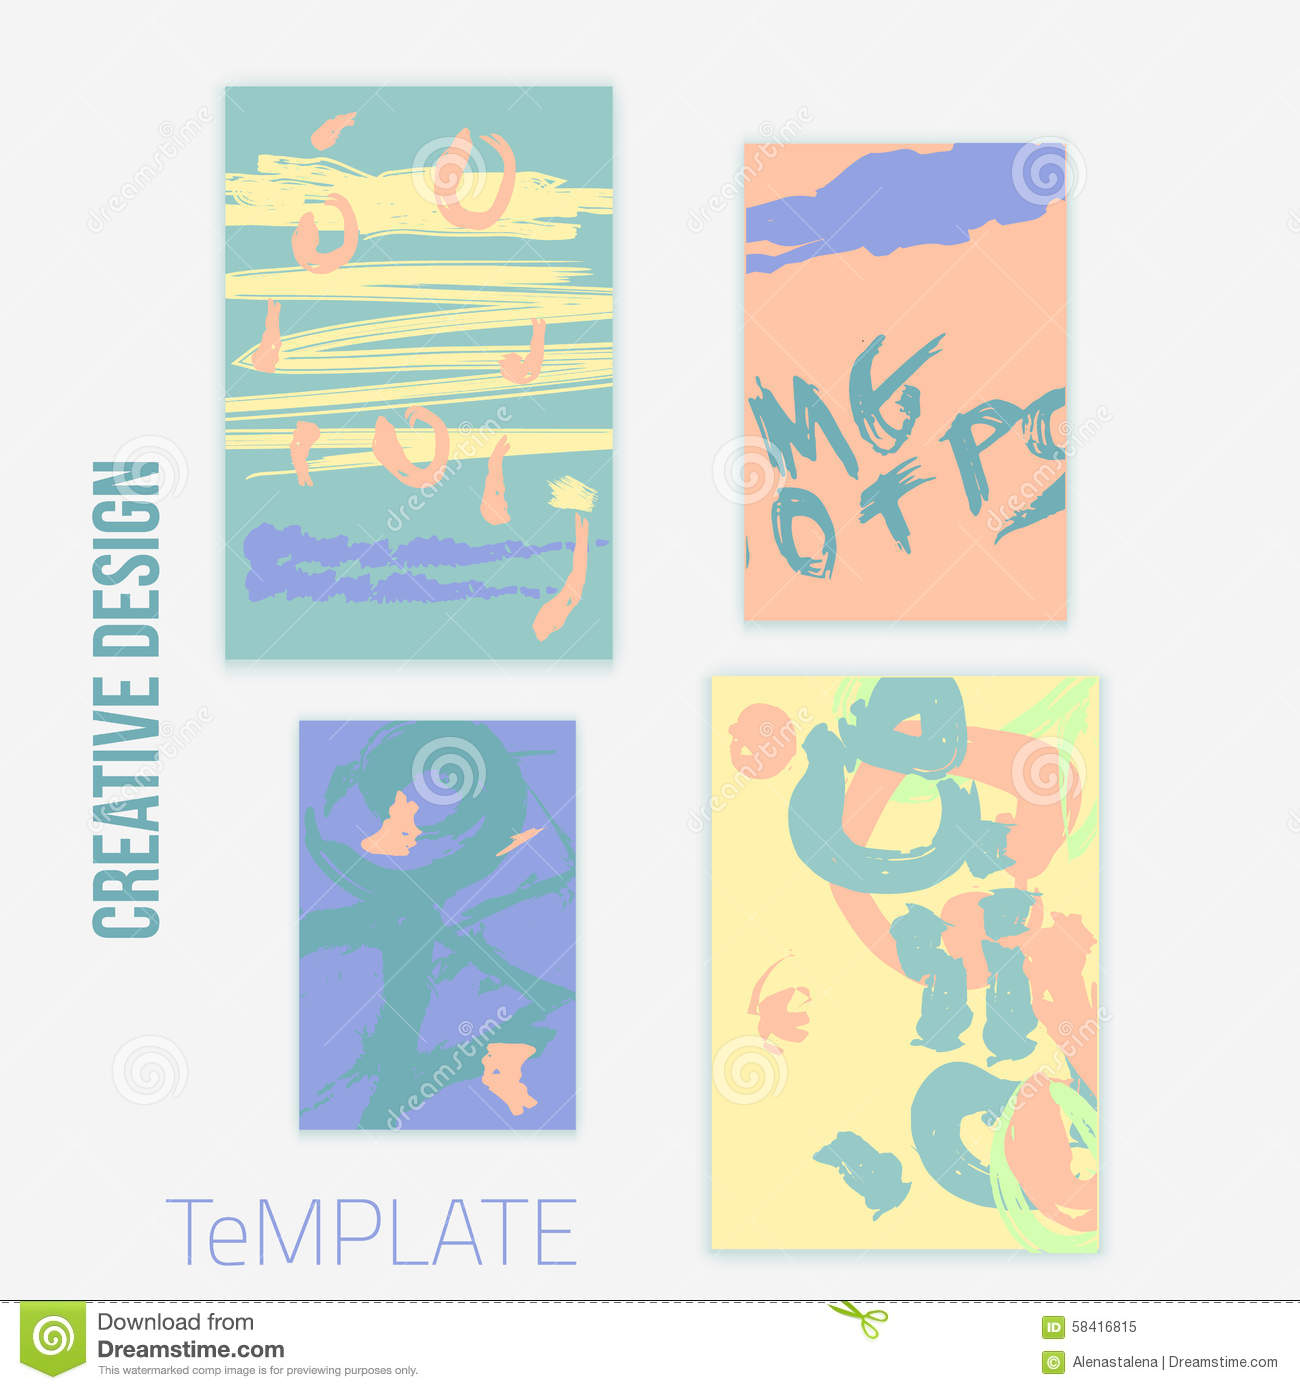 Trendy Poster Designs: Set Of 4 Trendy Poster Design Cards In Pastel Colors. Hand